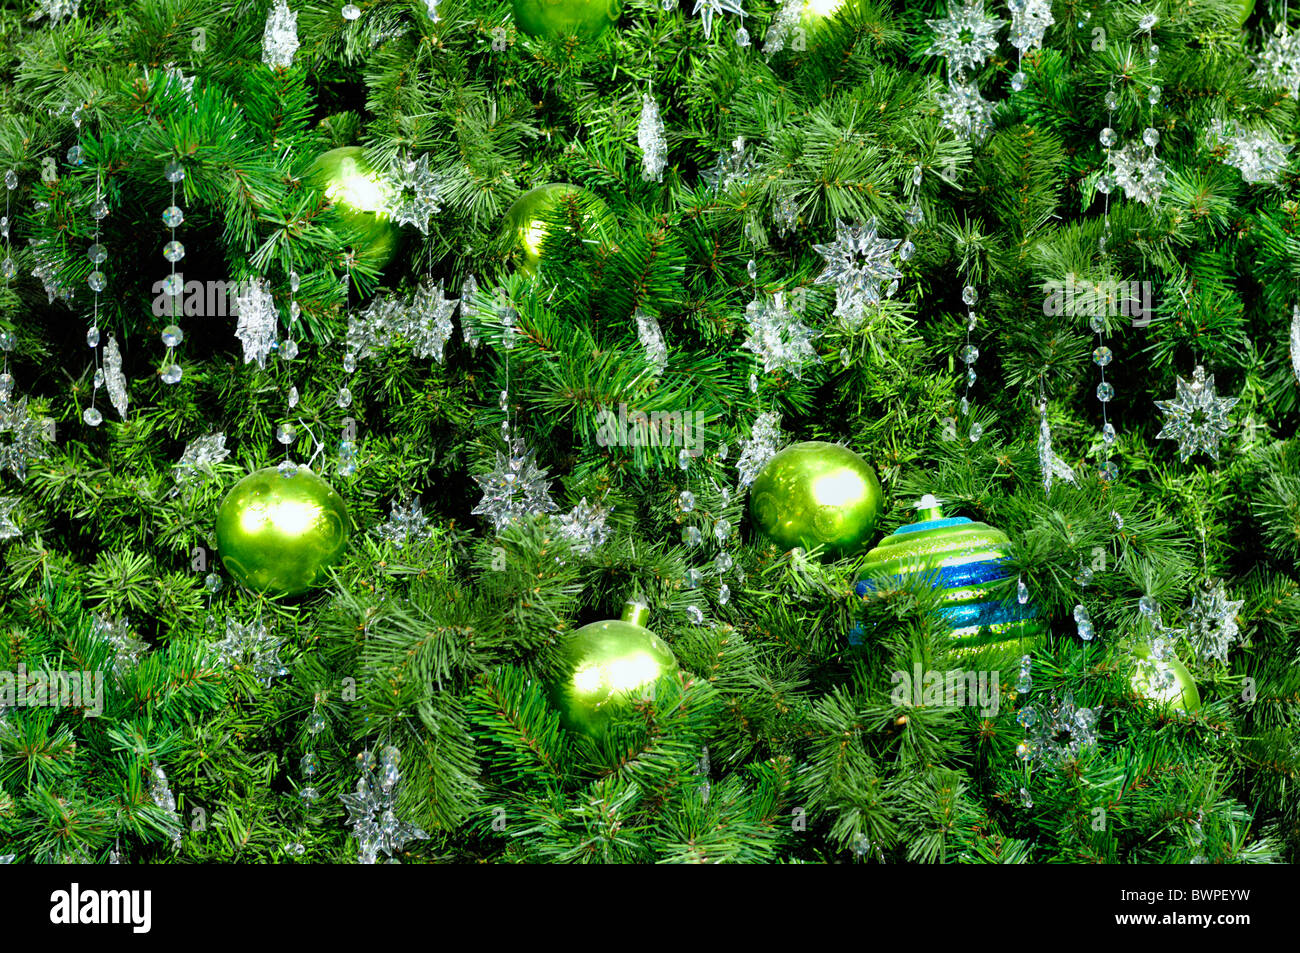 Decorated Christmas tree abstract green background - Stock Image